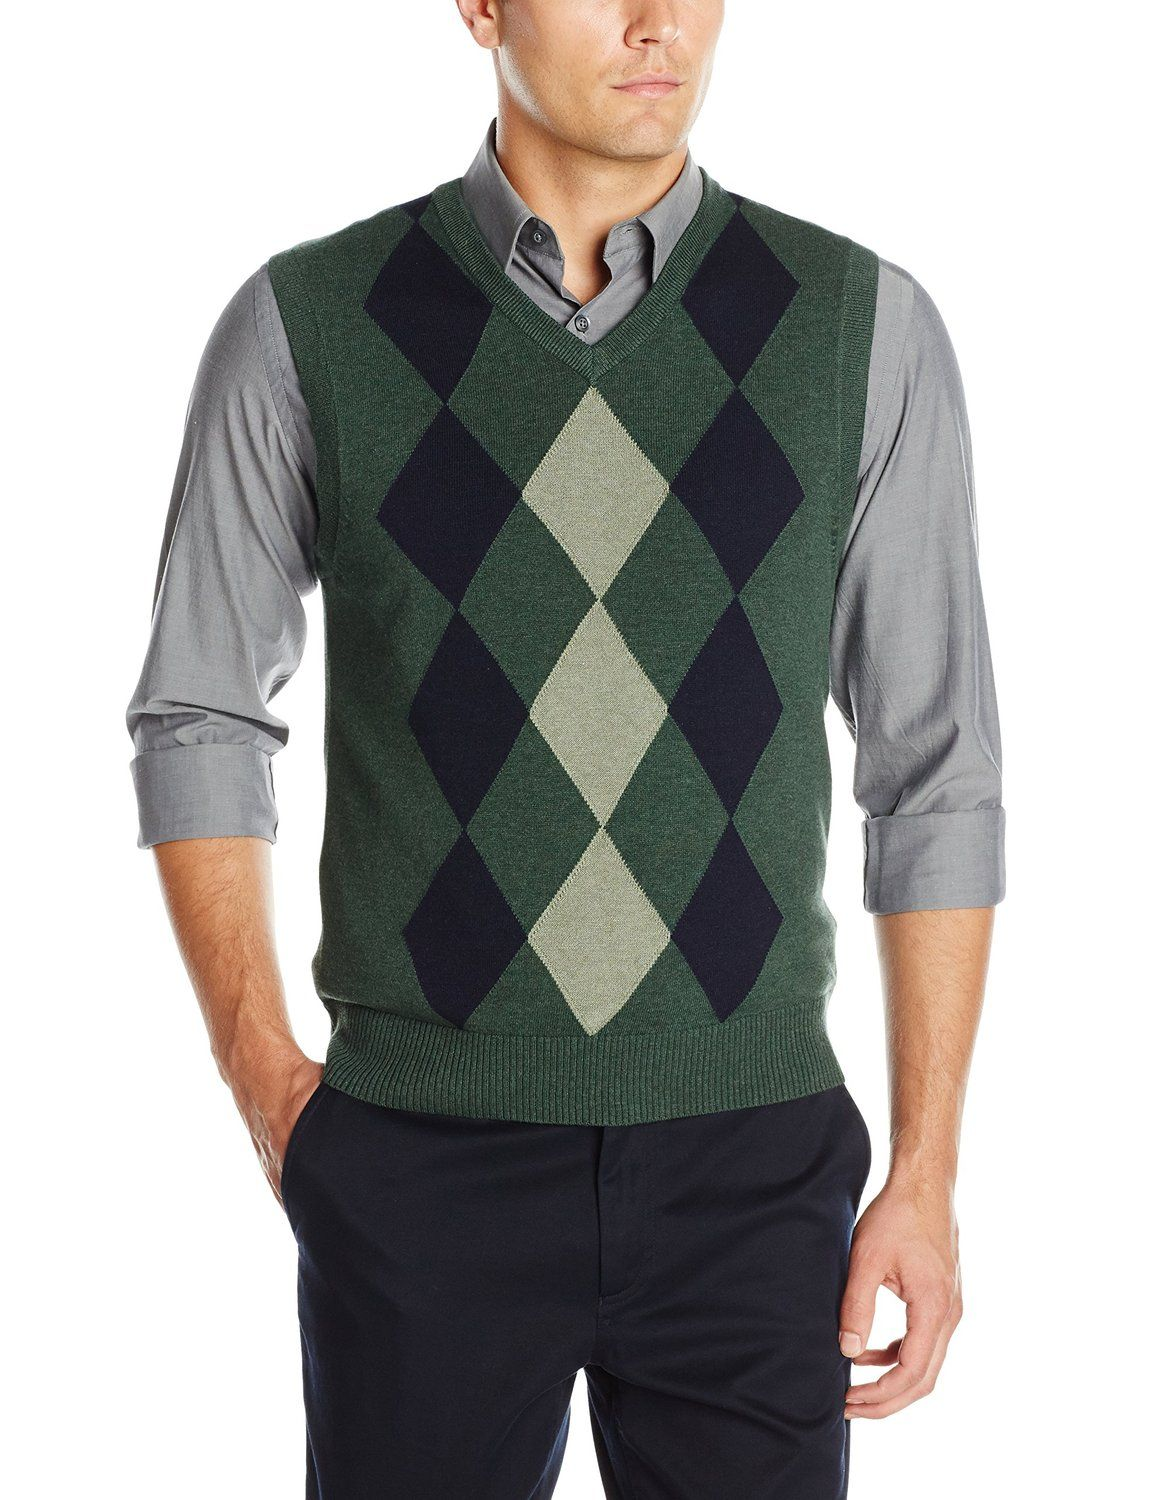 0a304096c50429 1920s Style Mens Golf Argyle Vests Haggar Mens Heather Argyle V-neck  Sweater Vest AT vintagedancer.com